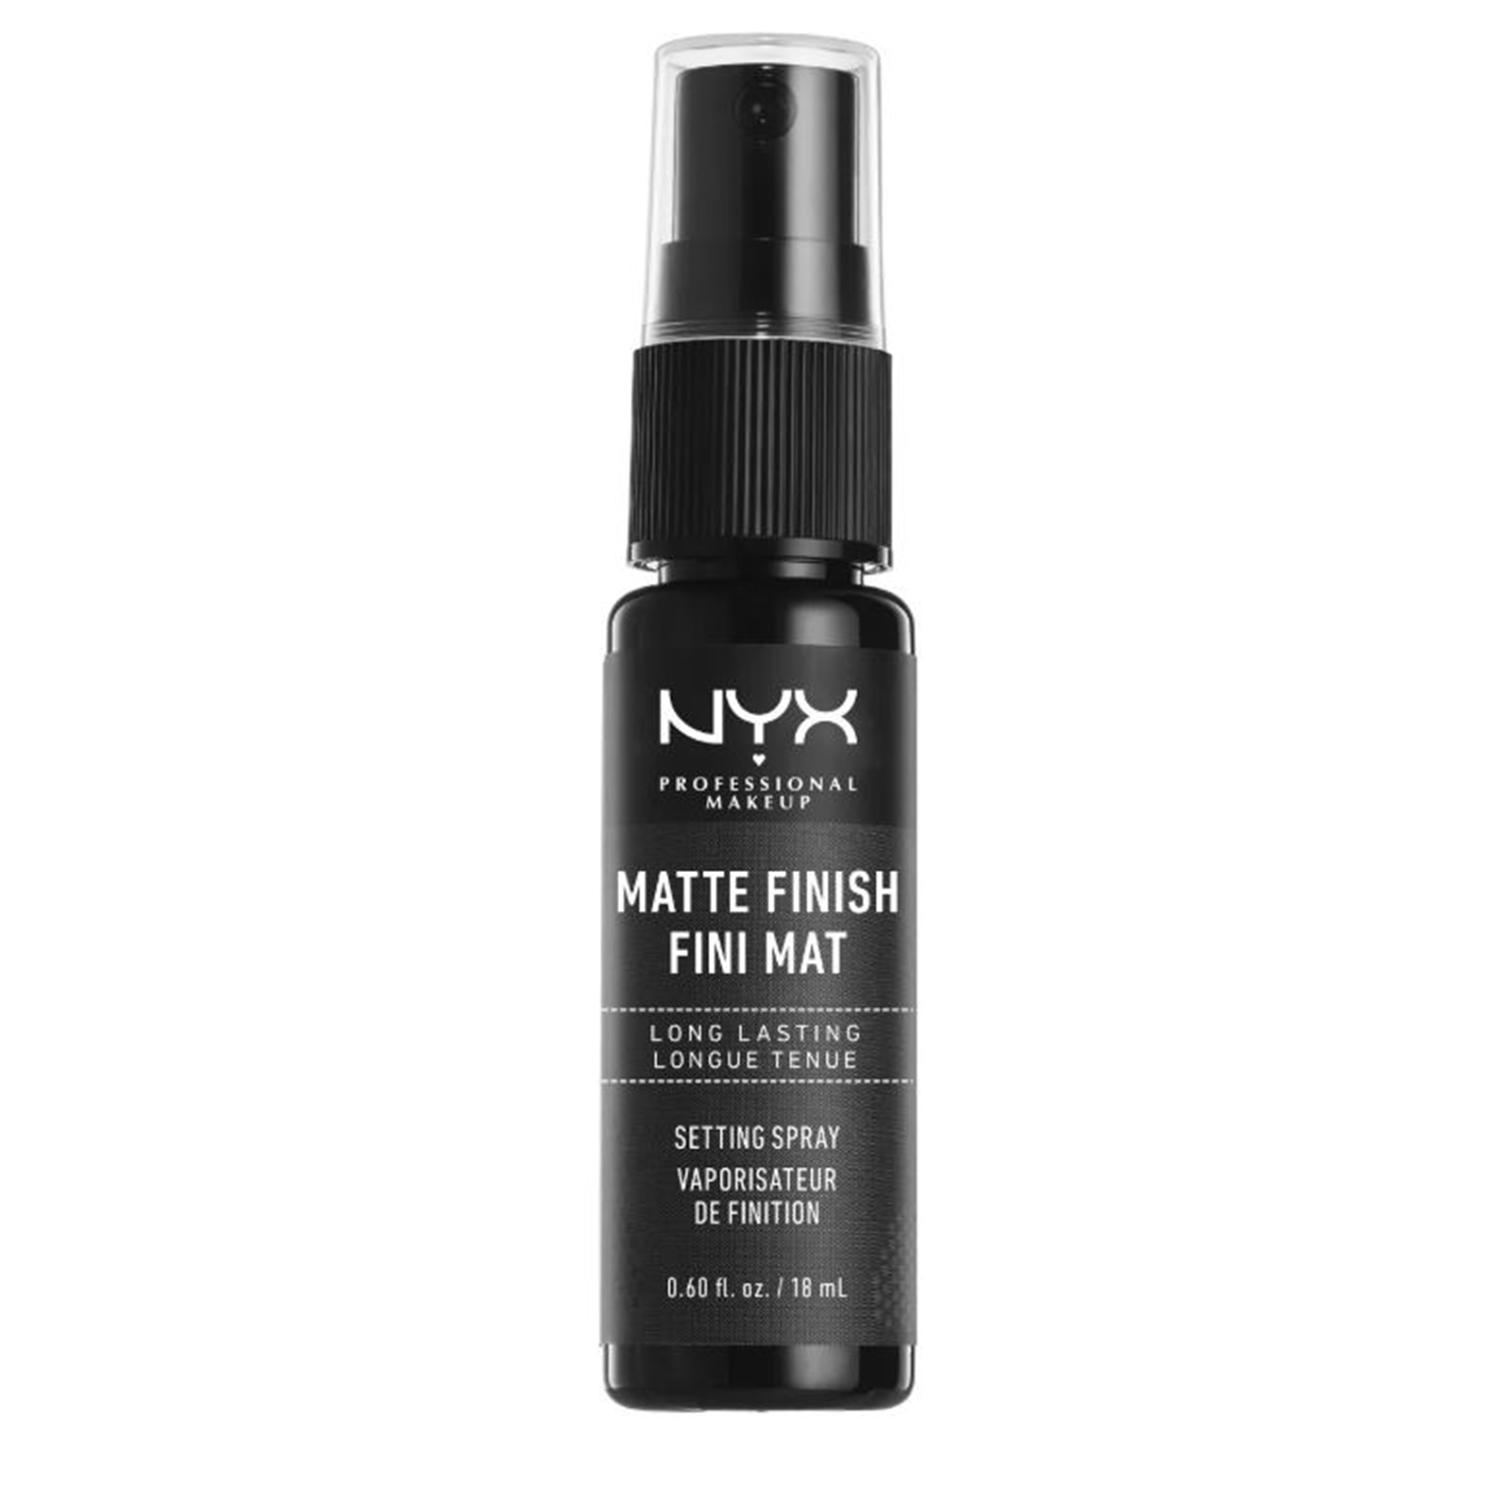 NYX Matte Finish Fini Mat Long Lasting Setting Spray Travel